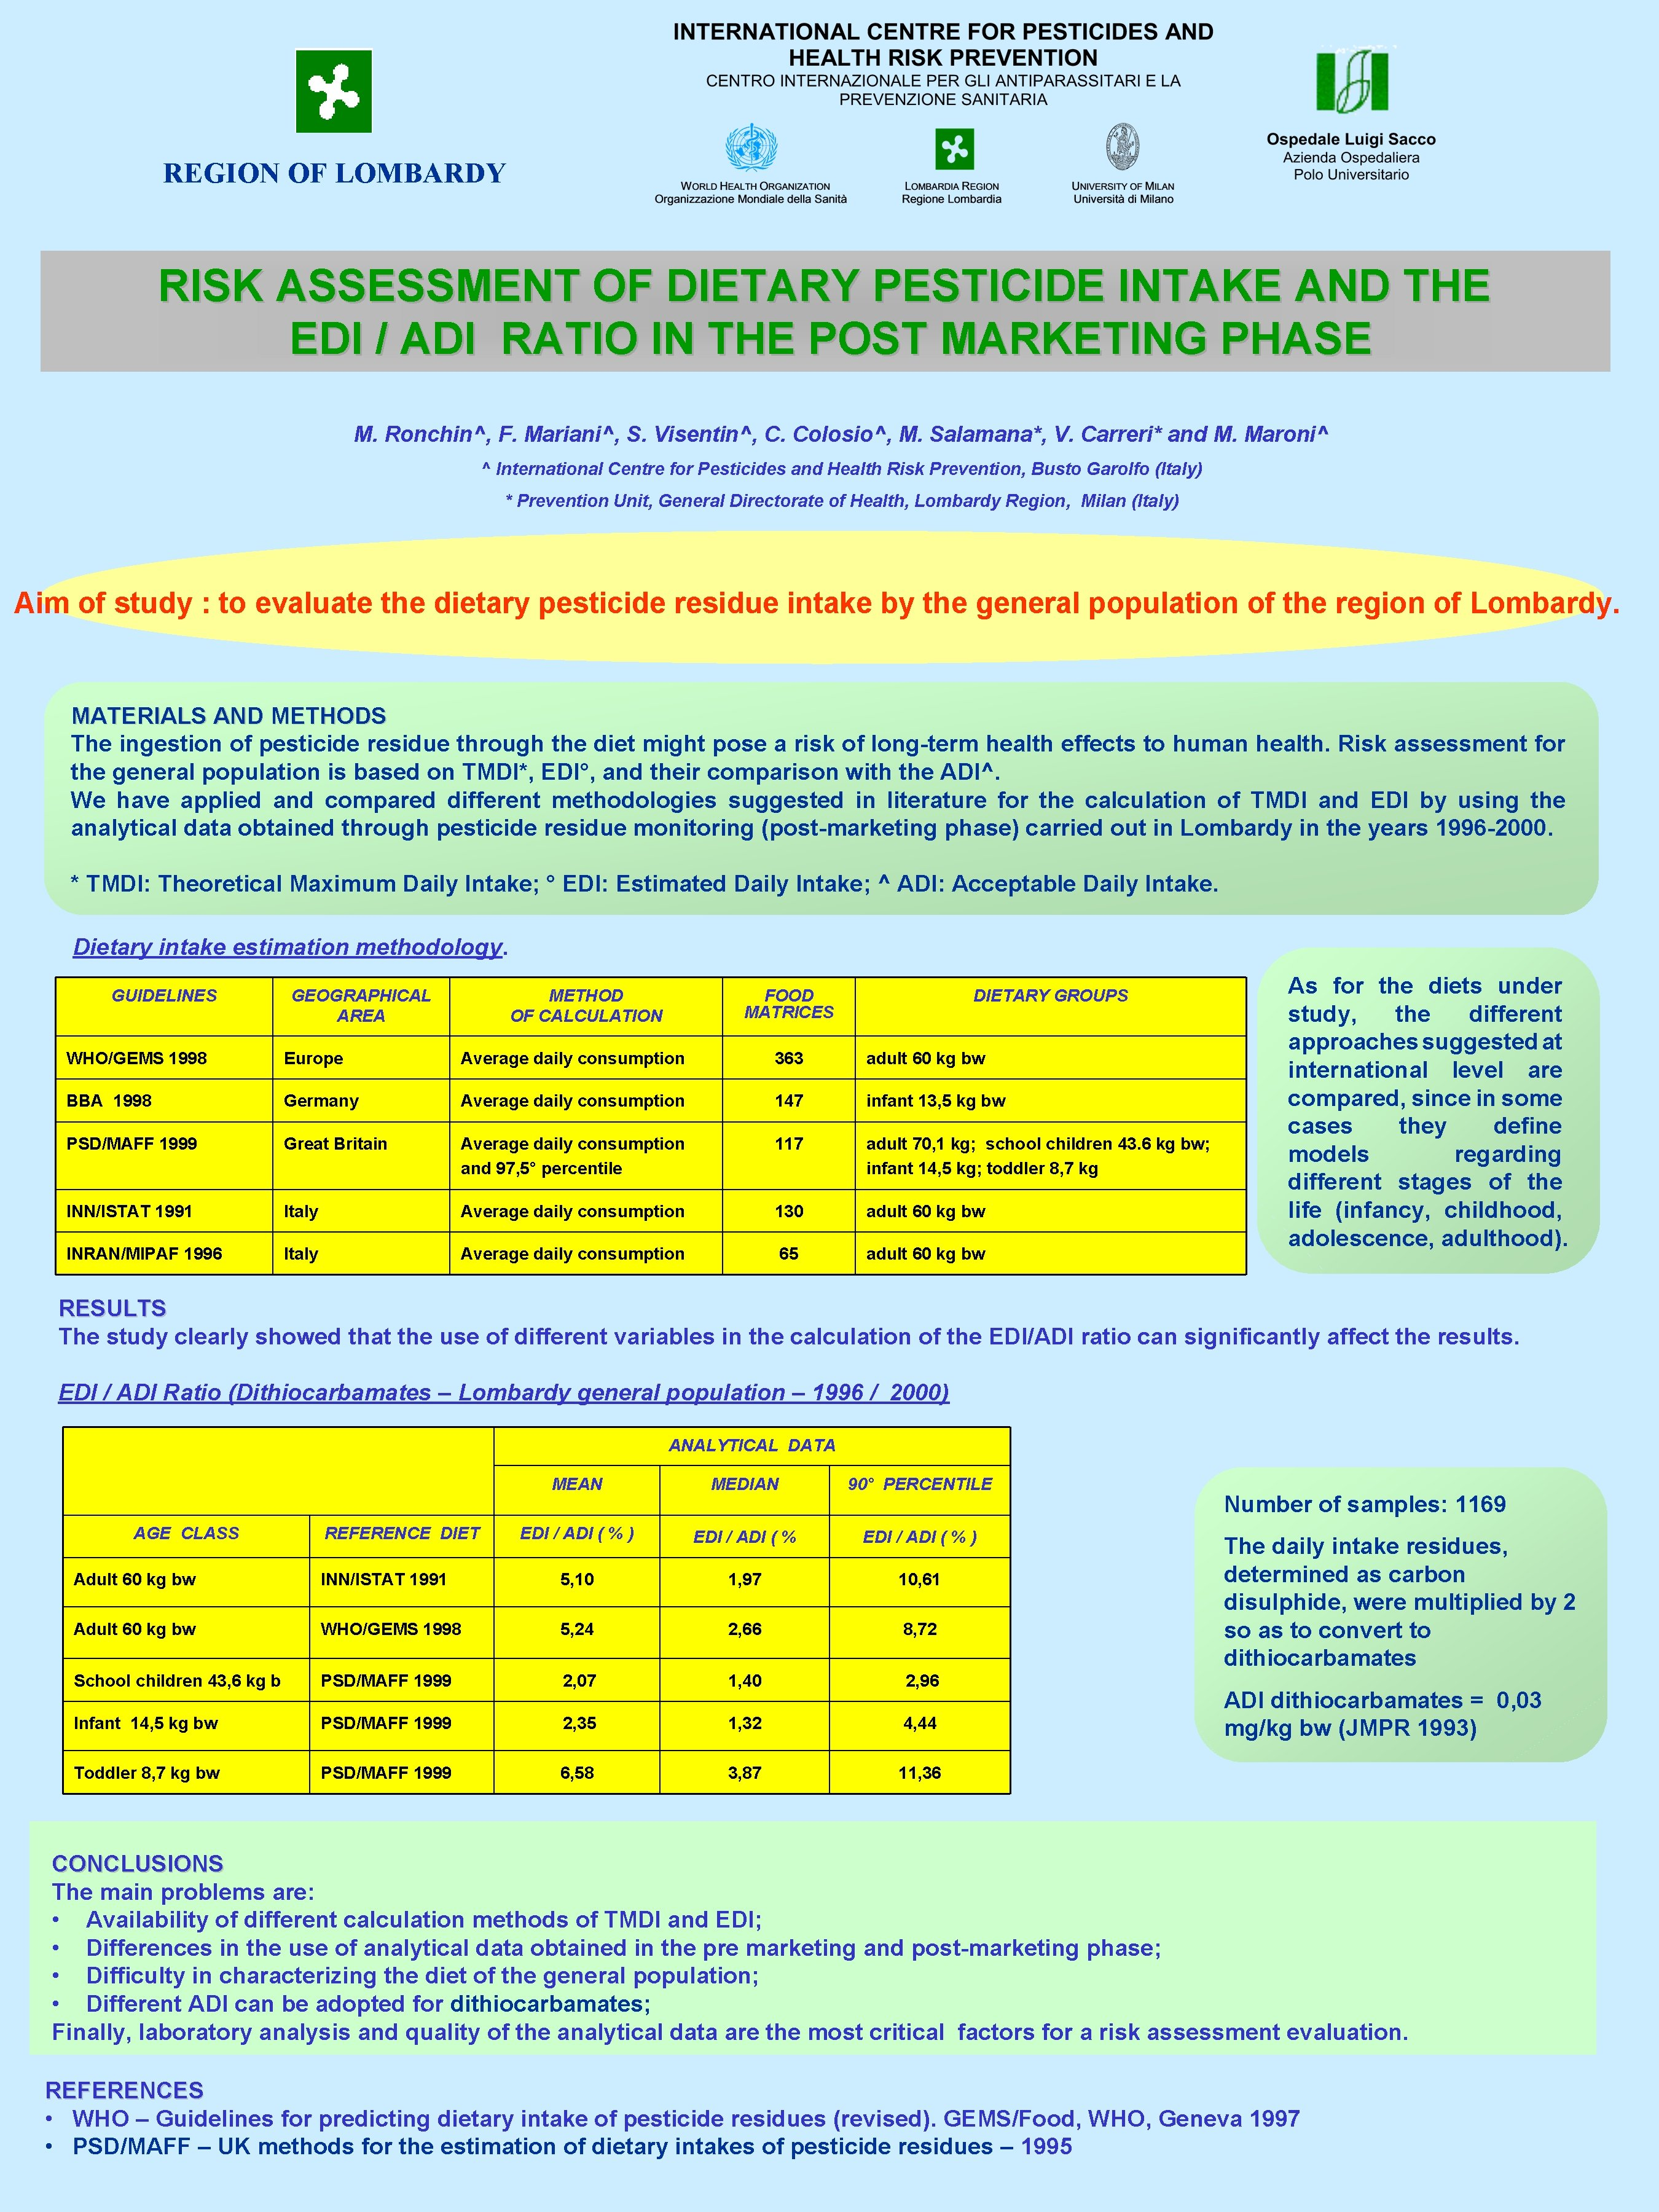 REGION OF LOMBARDY RISK ASSESSMENT OF DIETARY PESTICIDE INTAKE AND THE EDI / ADI